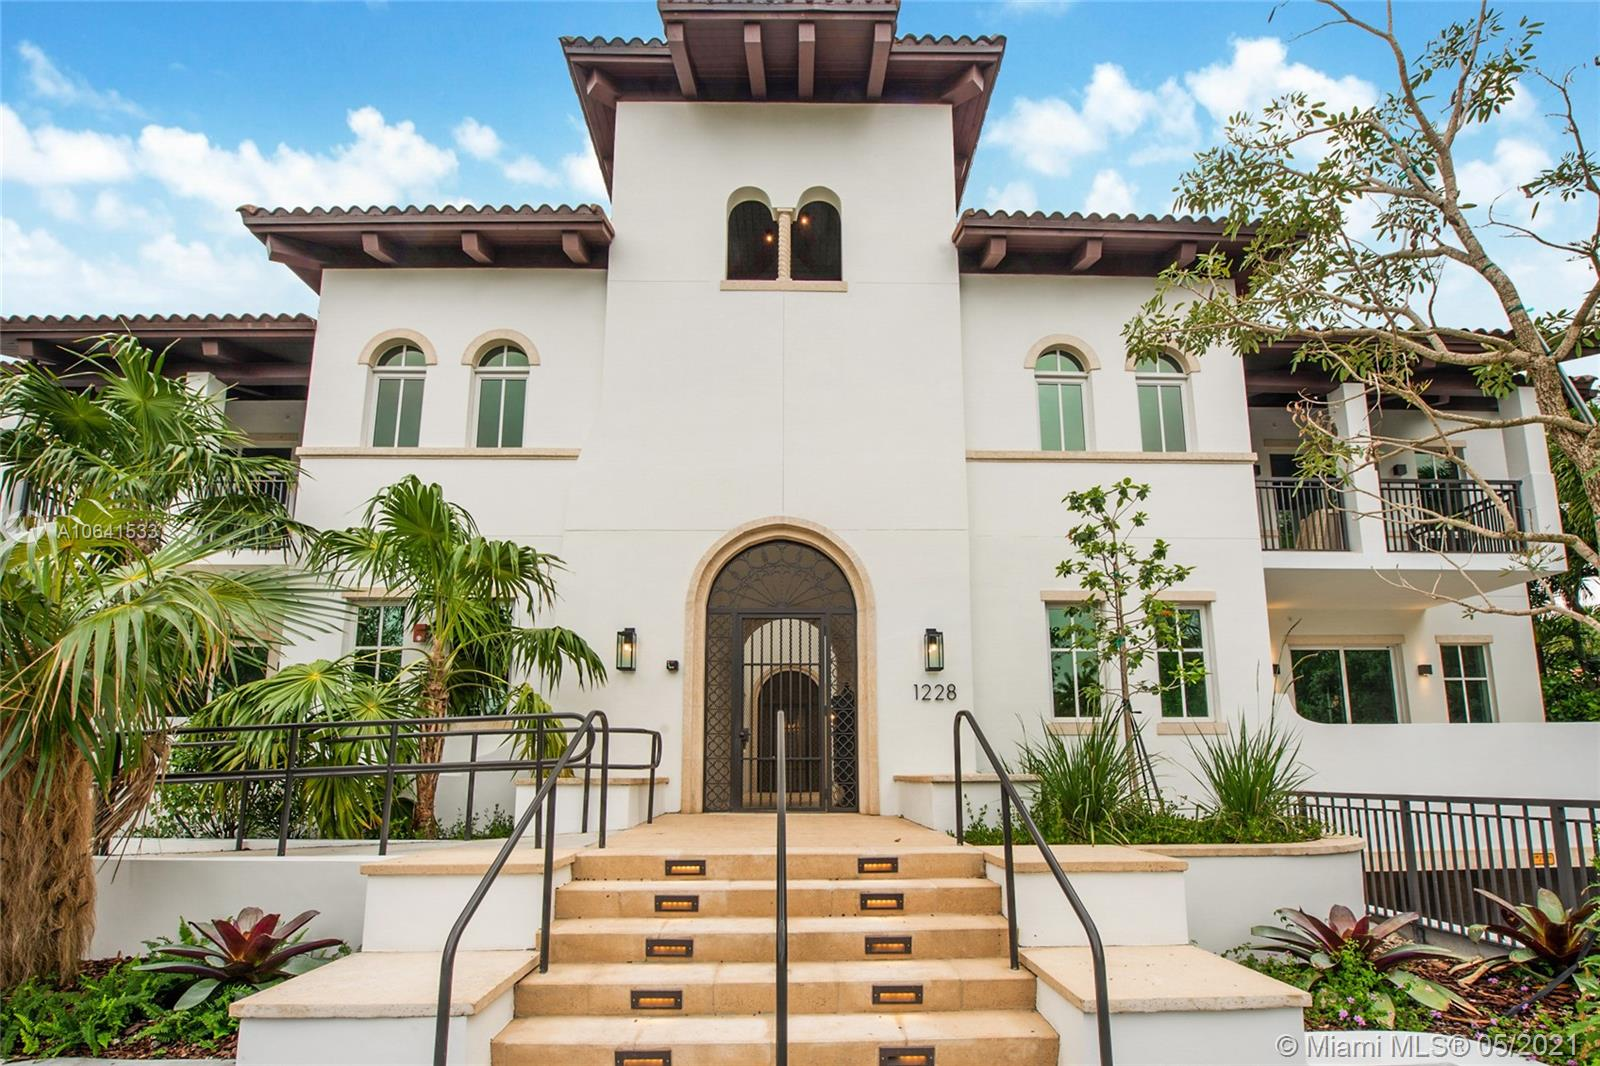 Be one of the fortunate few to live next to the iconic Biltmore Hotel. Enjoy Landmark-resort living in this boutique condo, 11 units on the golf course. Only condo of its kind in an established single-family neighborhood. This penthouse flat offers direct golf course views, private elevator, 3 balconies, & large covered terrace w/summer kitchen. Timeless beauty; the classic architecture, in keeping with Merrick's vision, is complemented by contemporary interiors, Italian Veneta Cucina kitchens, Wolf/Sub Zero appliances, sleek European doors & spa master bath. For a quick cool down, enjoy the residents' dipping pool & deck, surrounded by lush landscaping & tall privacy hedge. 1-year free memb. to The Club at the Biltmore. Few units left! LA+ADJ incl covered Summer kitch TOTAL incl. balcony.